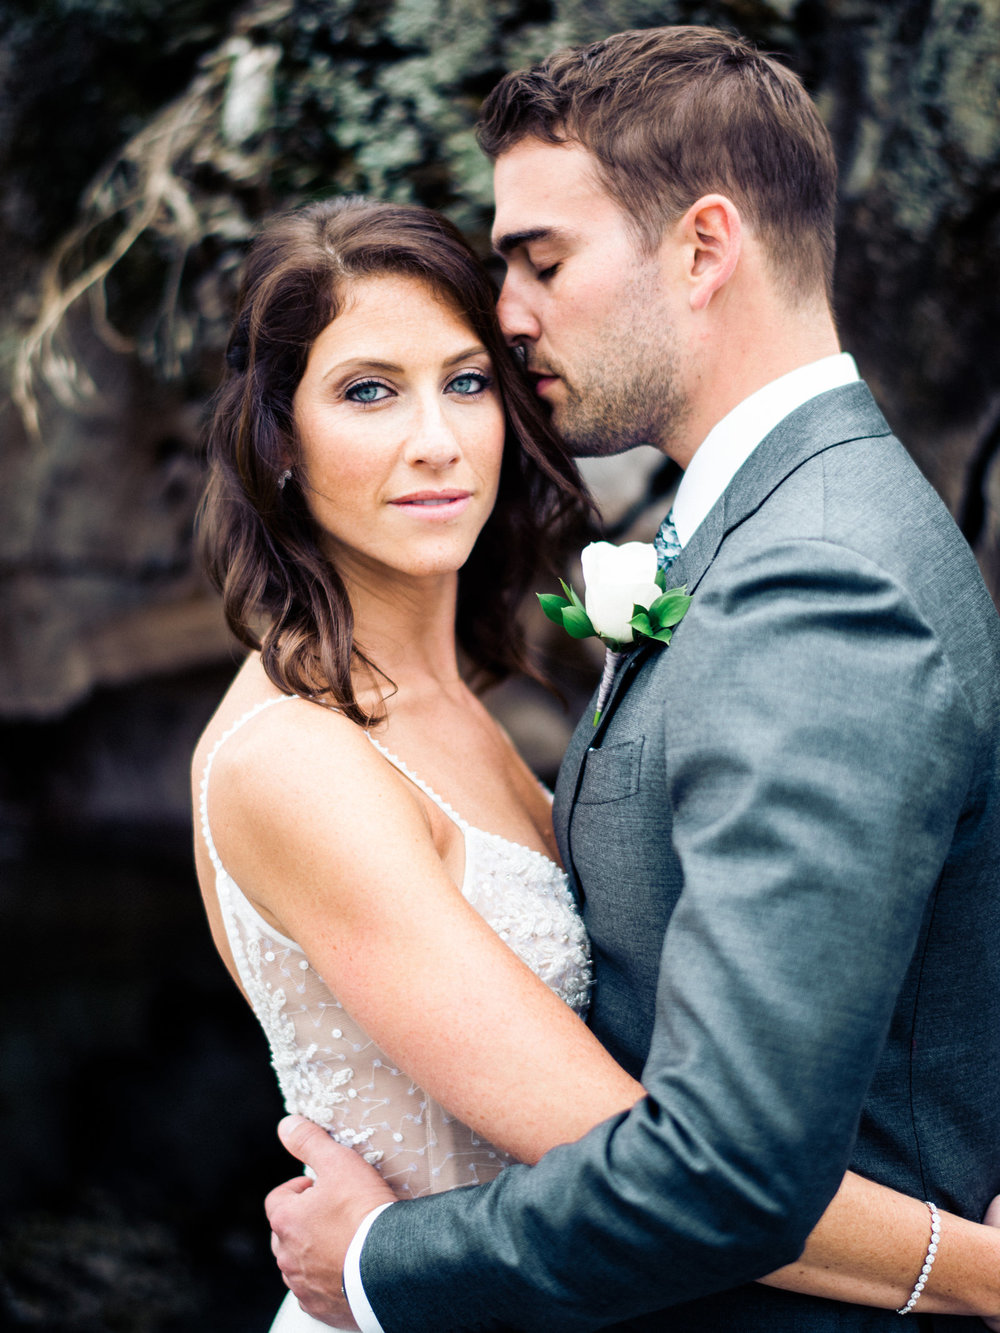 155-kiana-lodge-portrait-by-washington-wedding-photographer-ryan-flynn.jpg